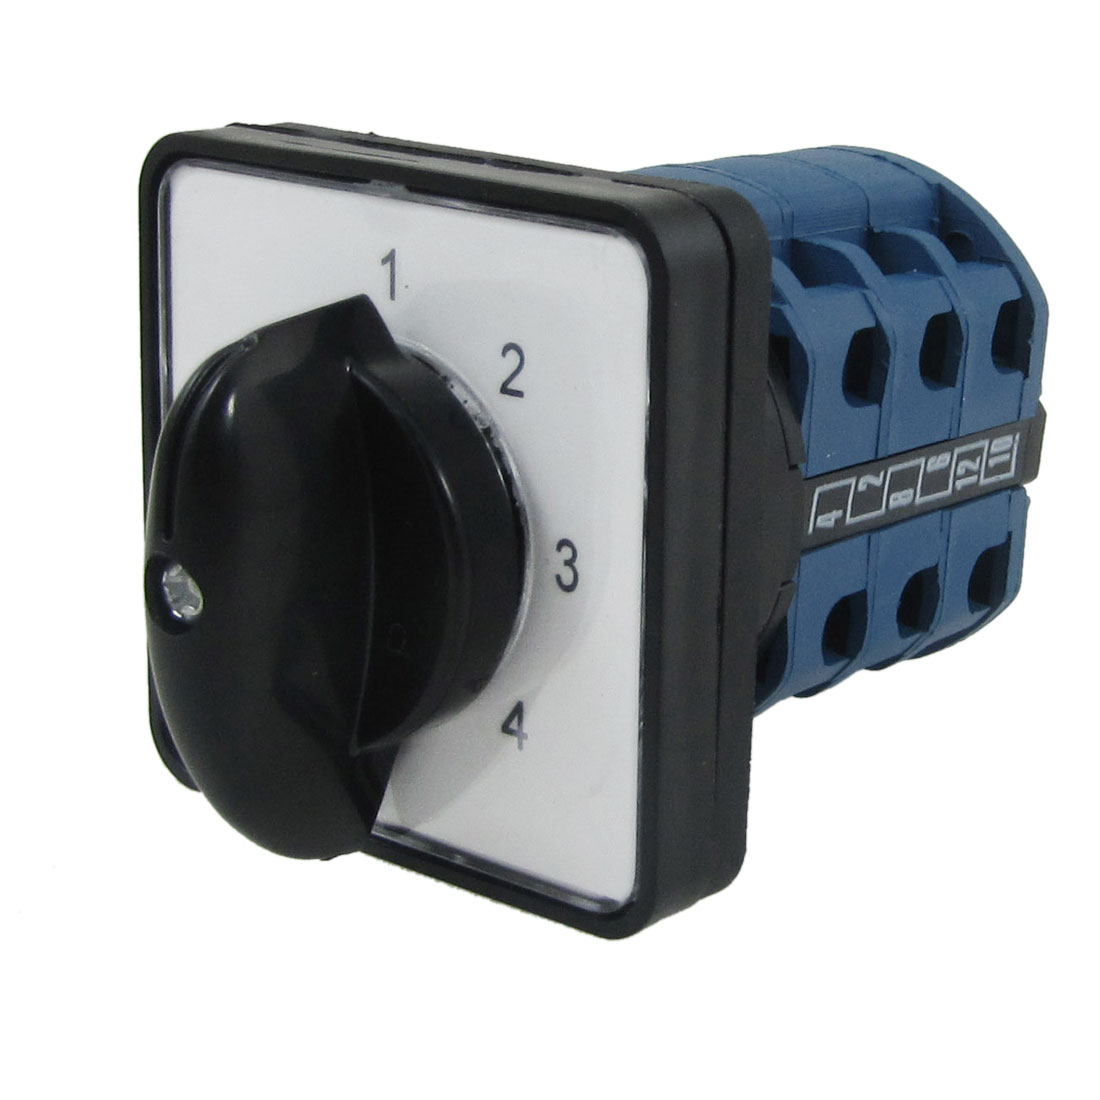 AC 440V 240V 4 Position Rotary Cam Universal Combination Switch